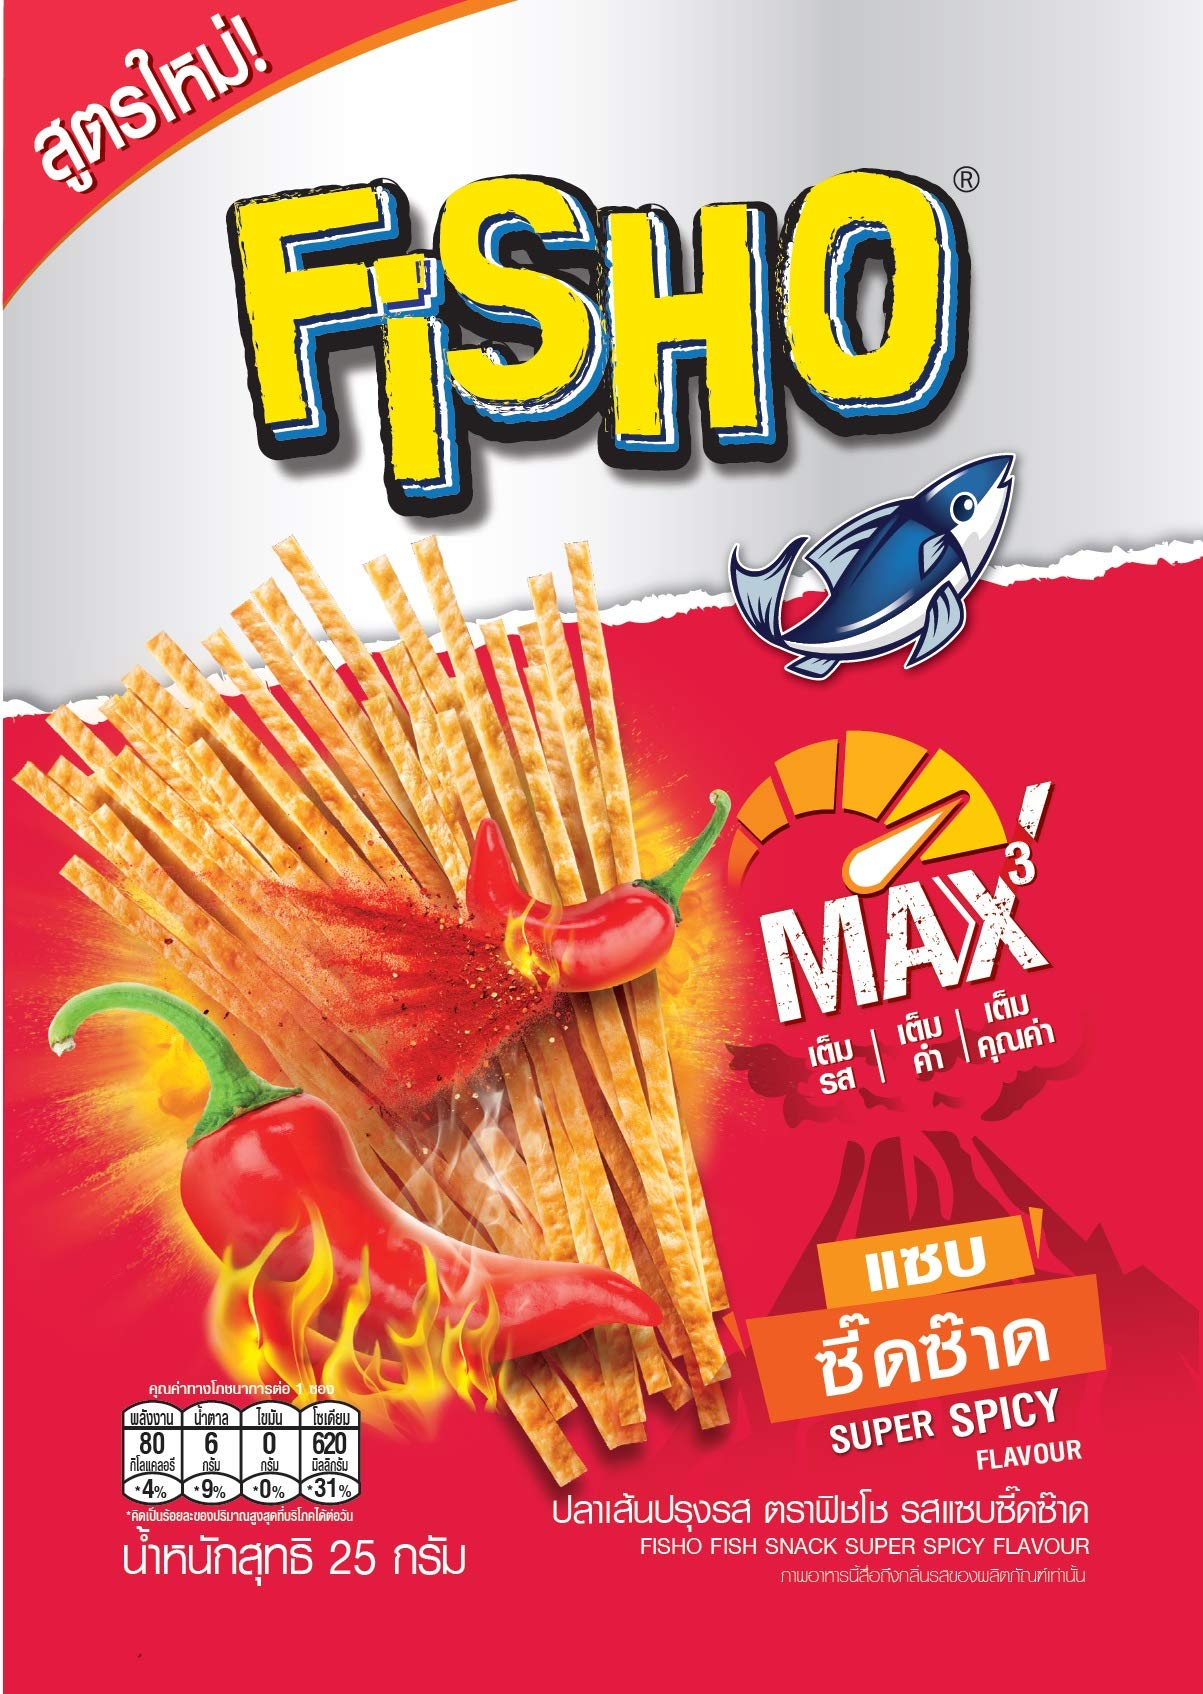 Fisho Brand, Fisho Fish Snack Super Spicy Flavour 25g X 6 Packs by Fisho